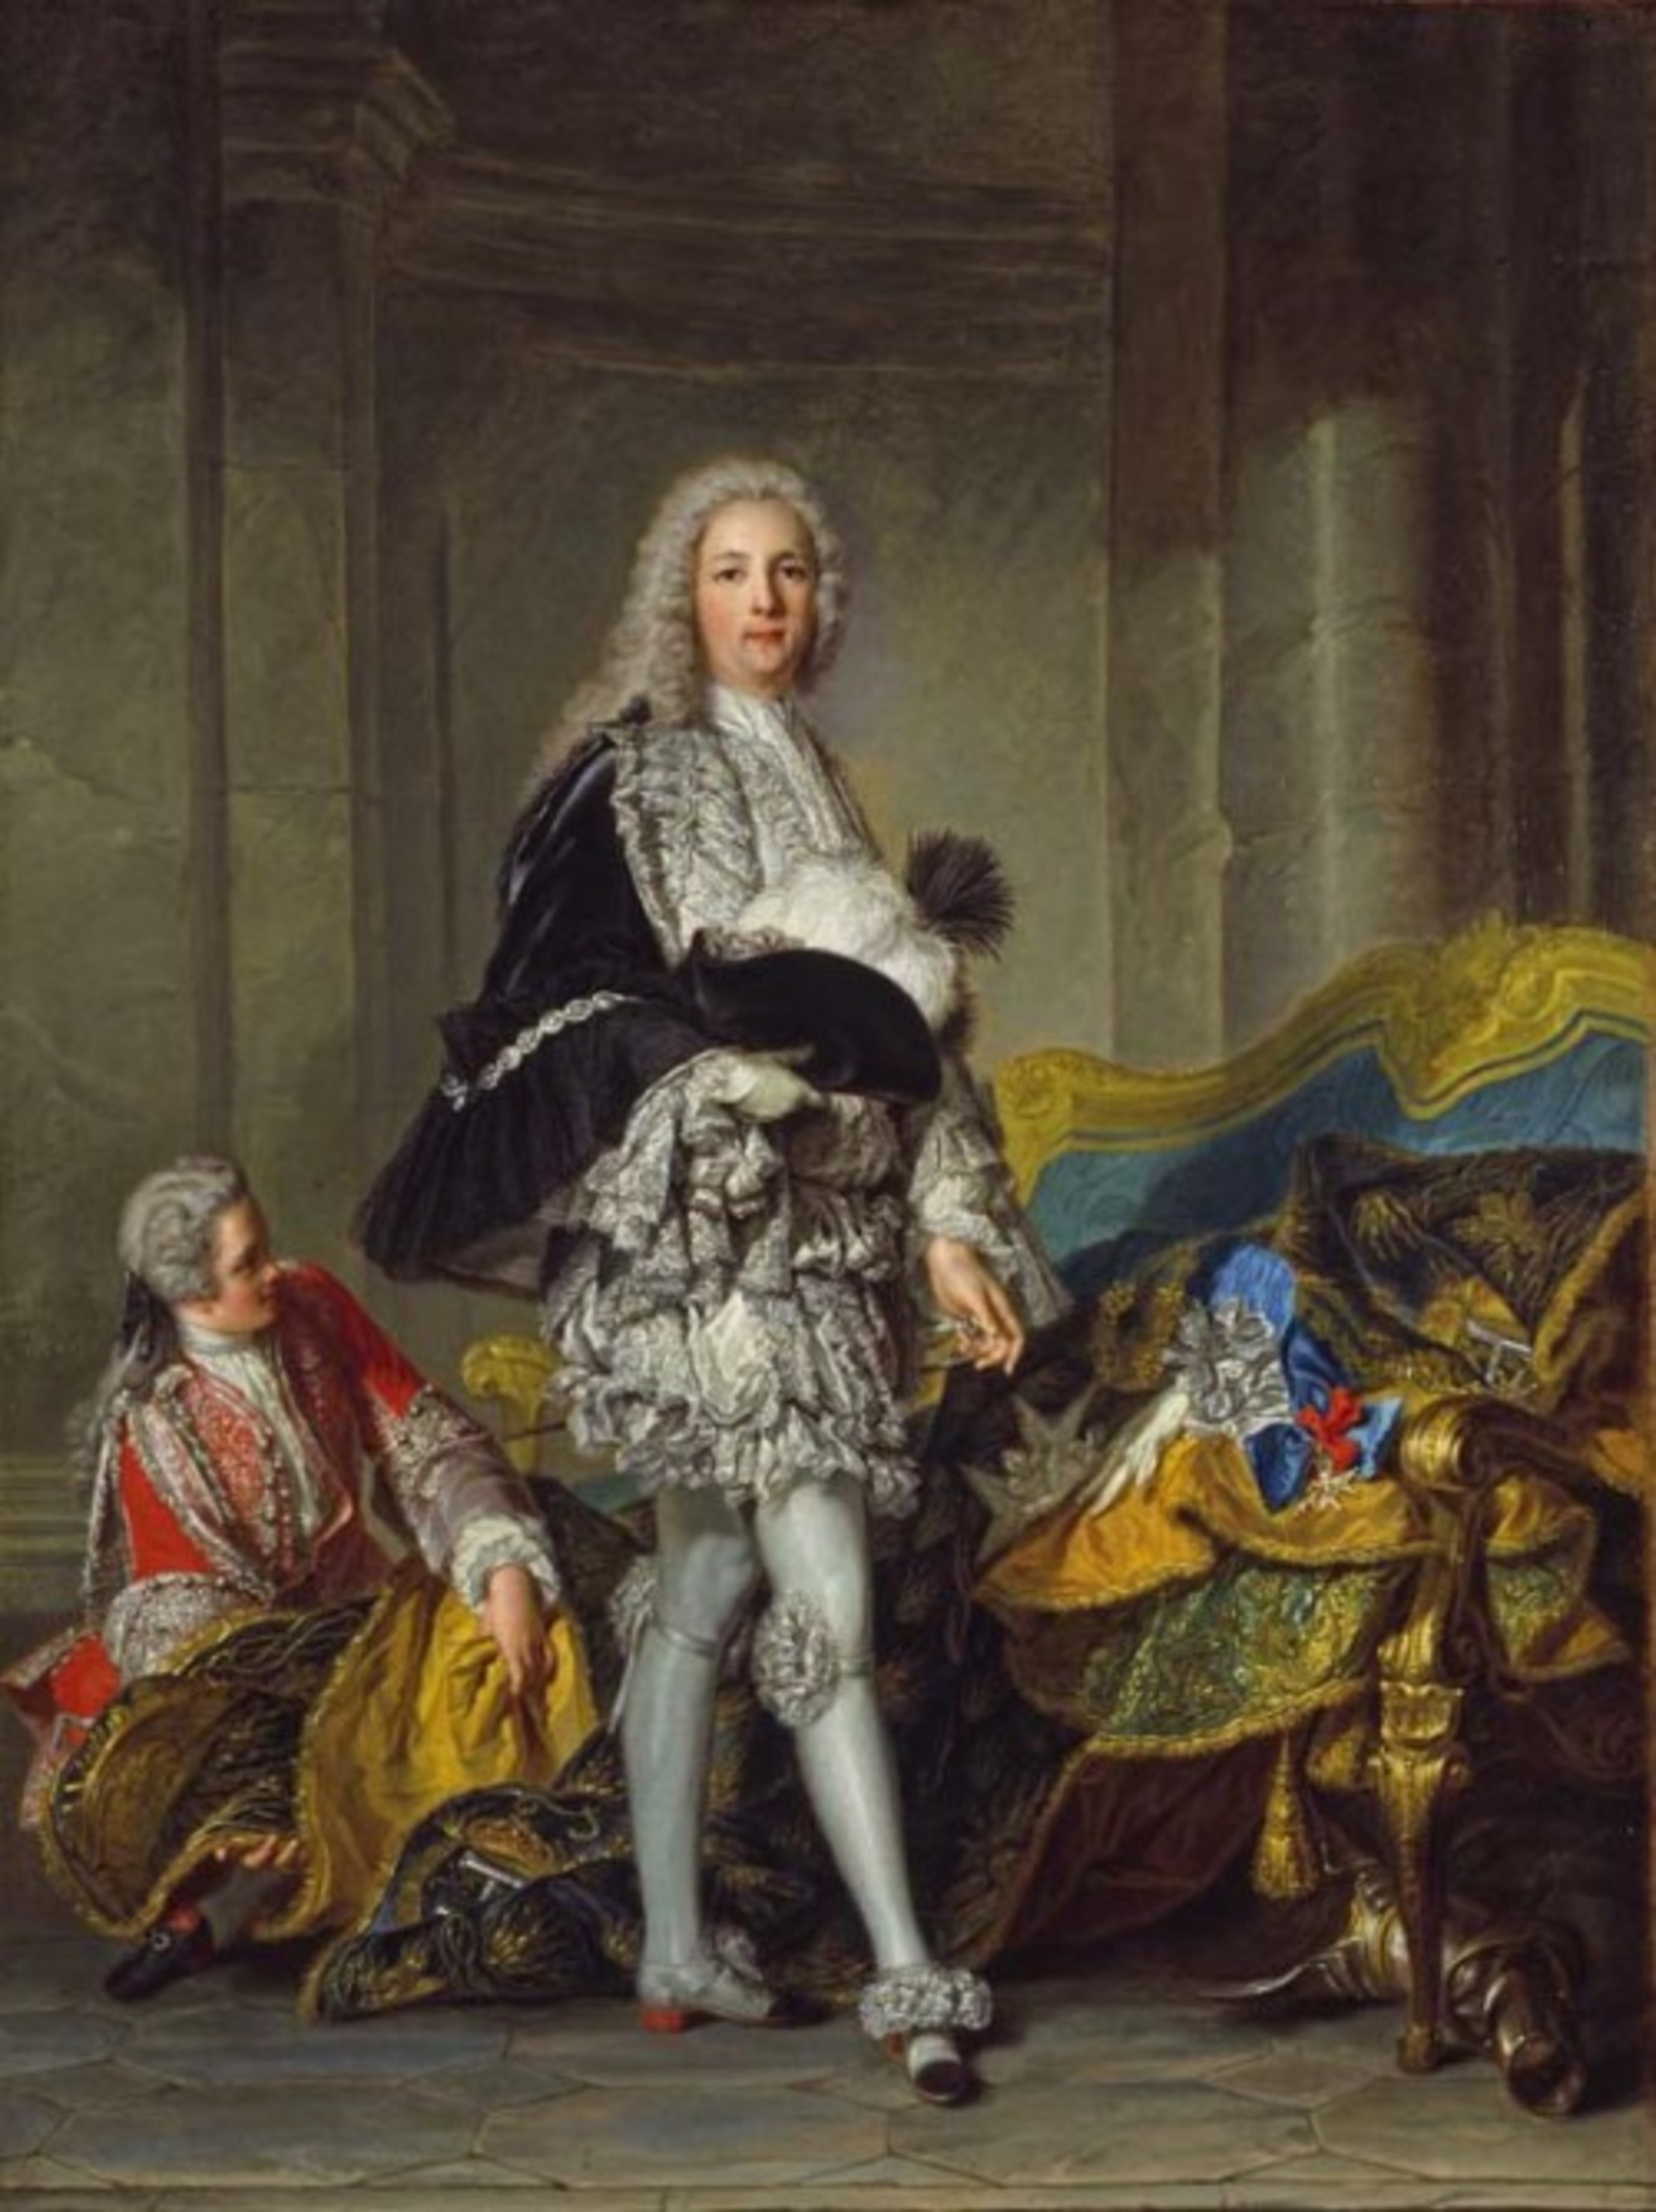 The-Marechal-Duke-of-Richelieu-after-Jean-Marc-Nattier-The-Wallace-Collection.jpg